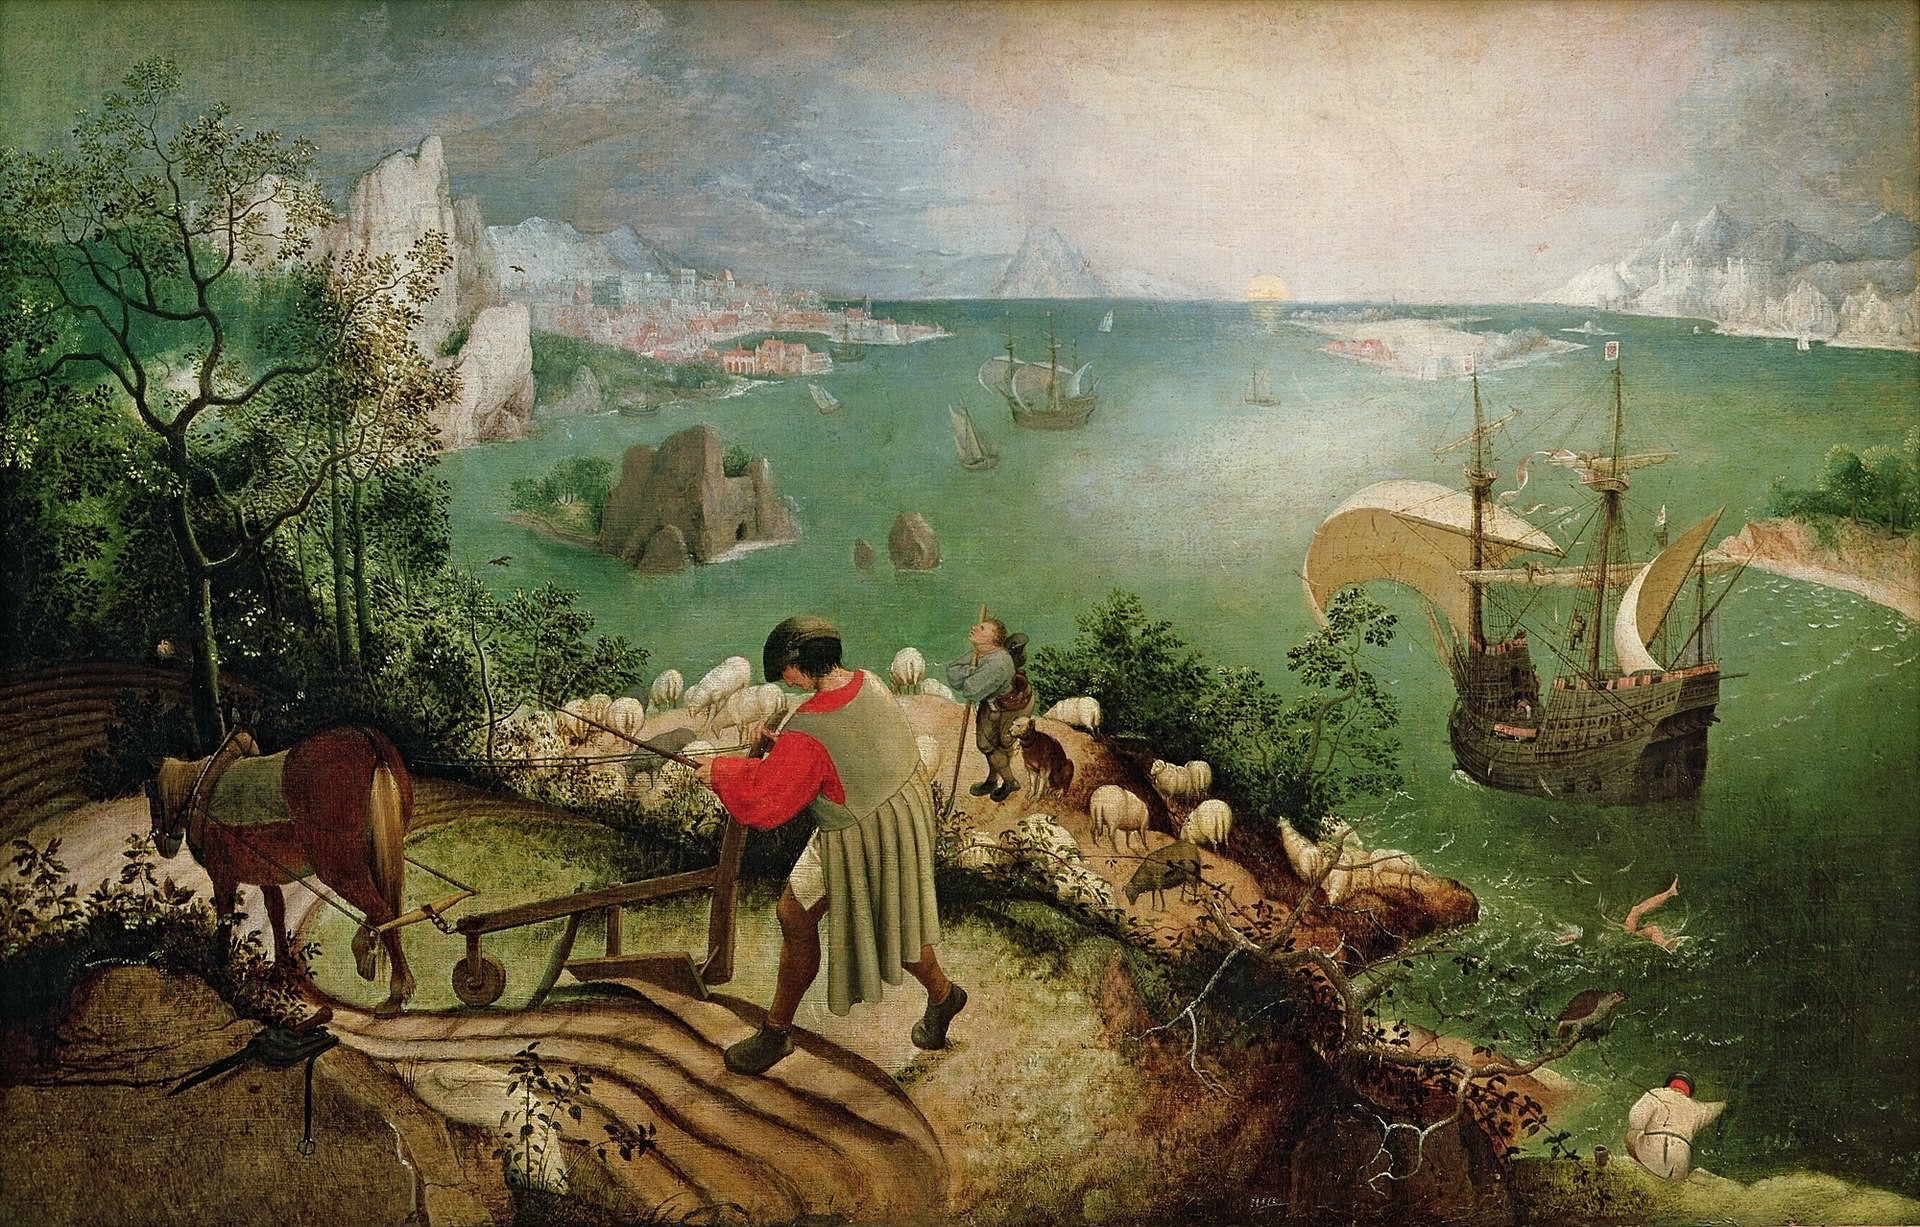 Painting on canvas by Bruegel the Elder. Icarus, drowning. The ploughman, shepherd and angler are indifferent to this scene.